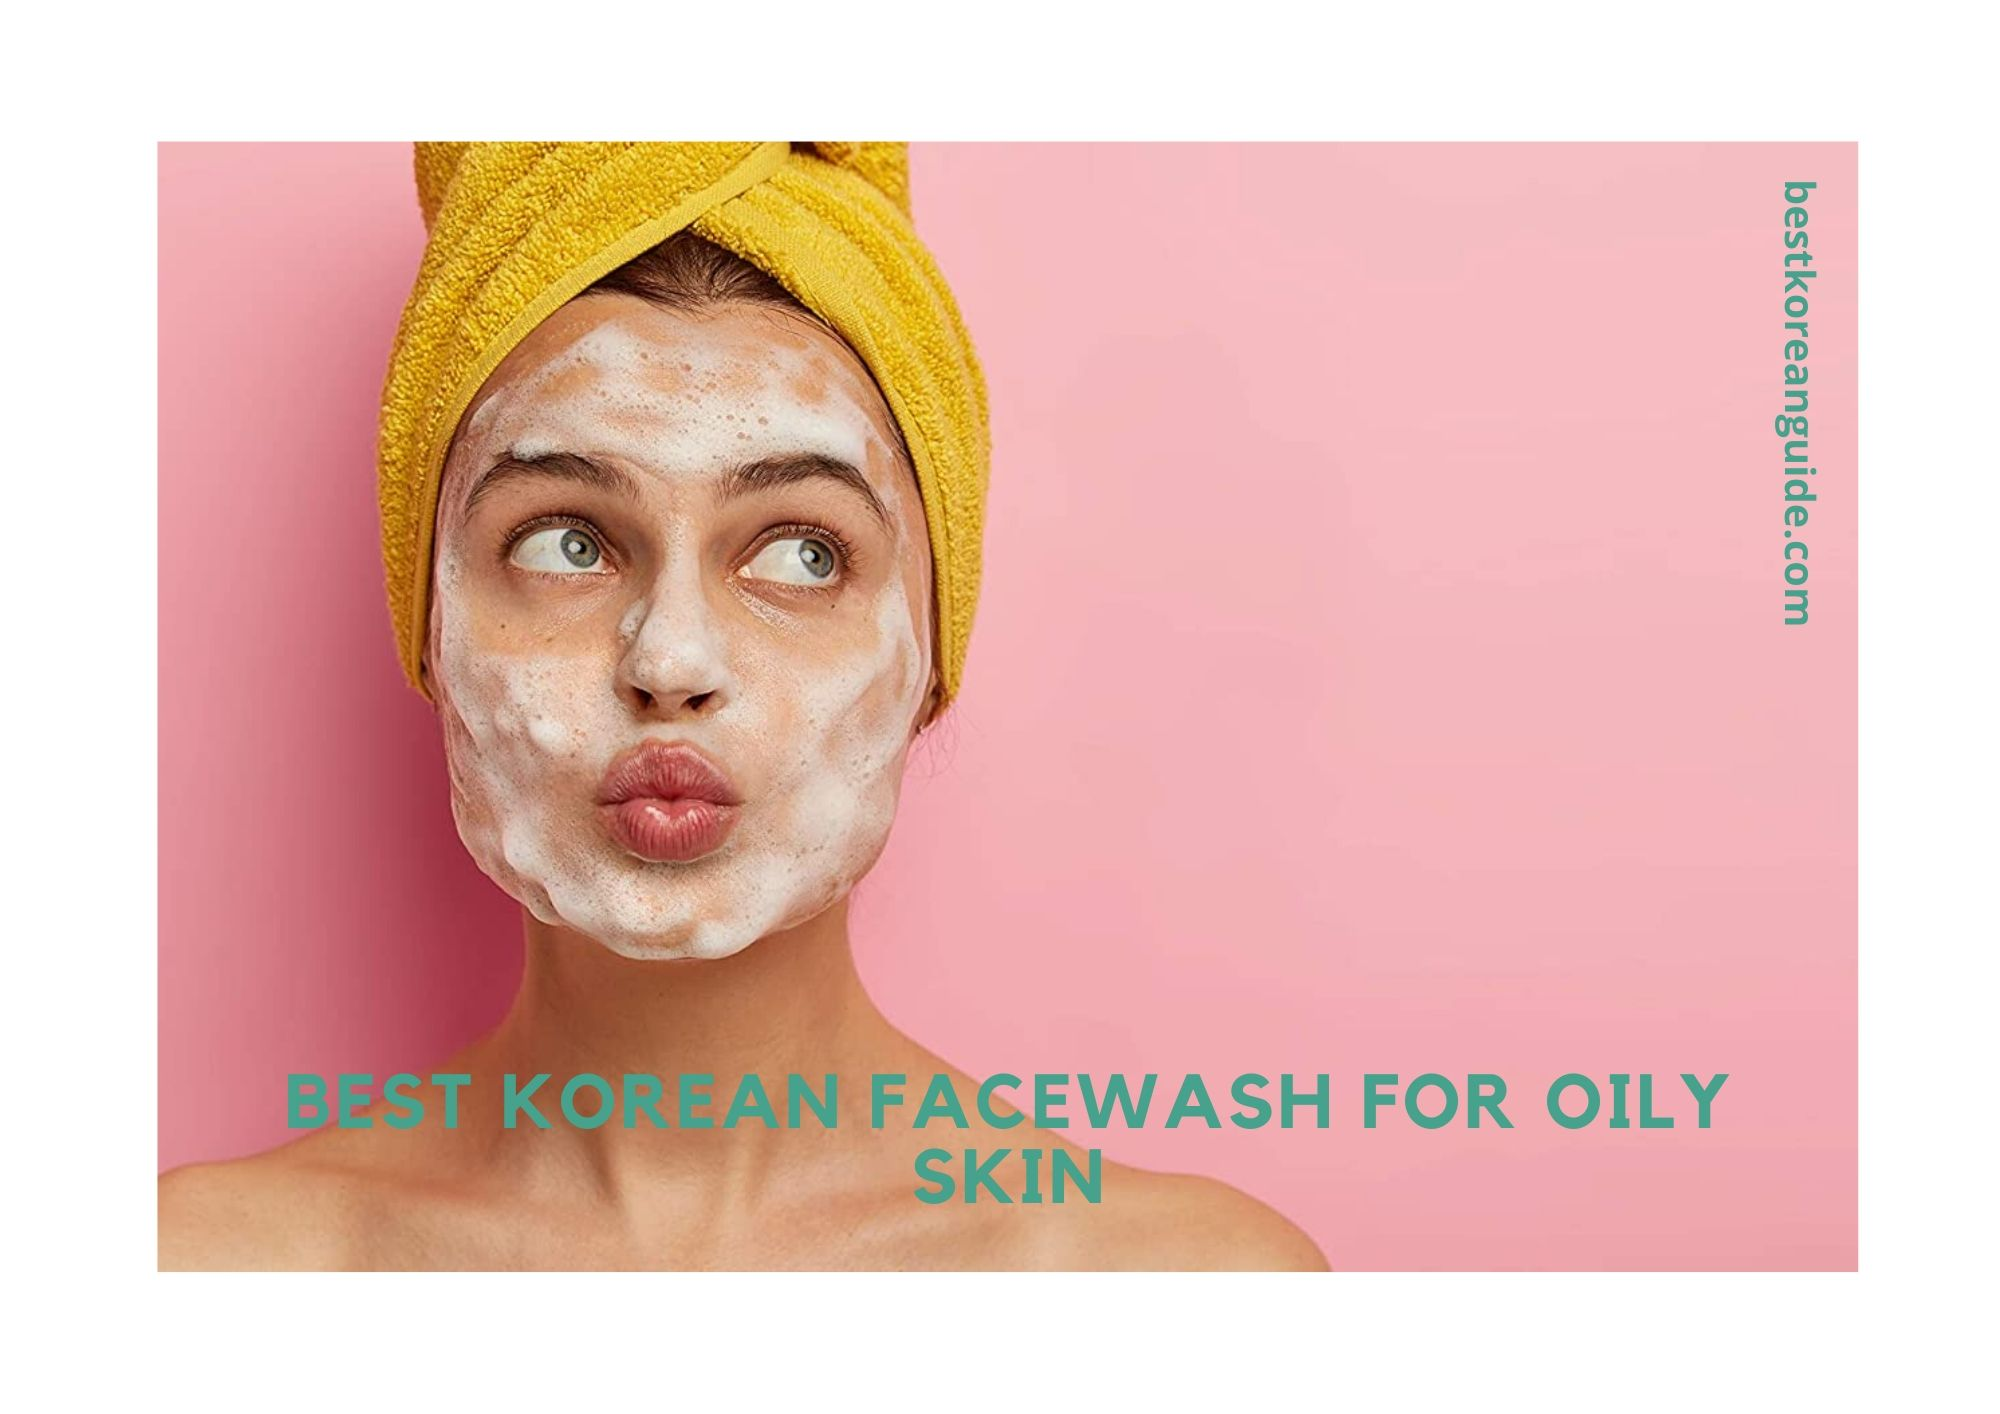 Best Korean facewash for oily skin